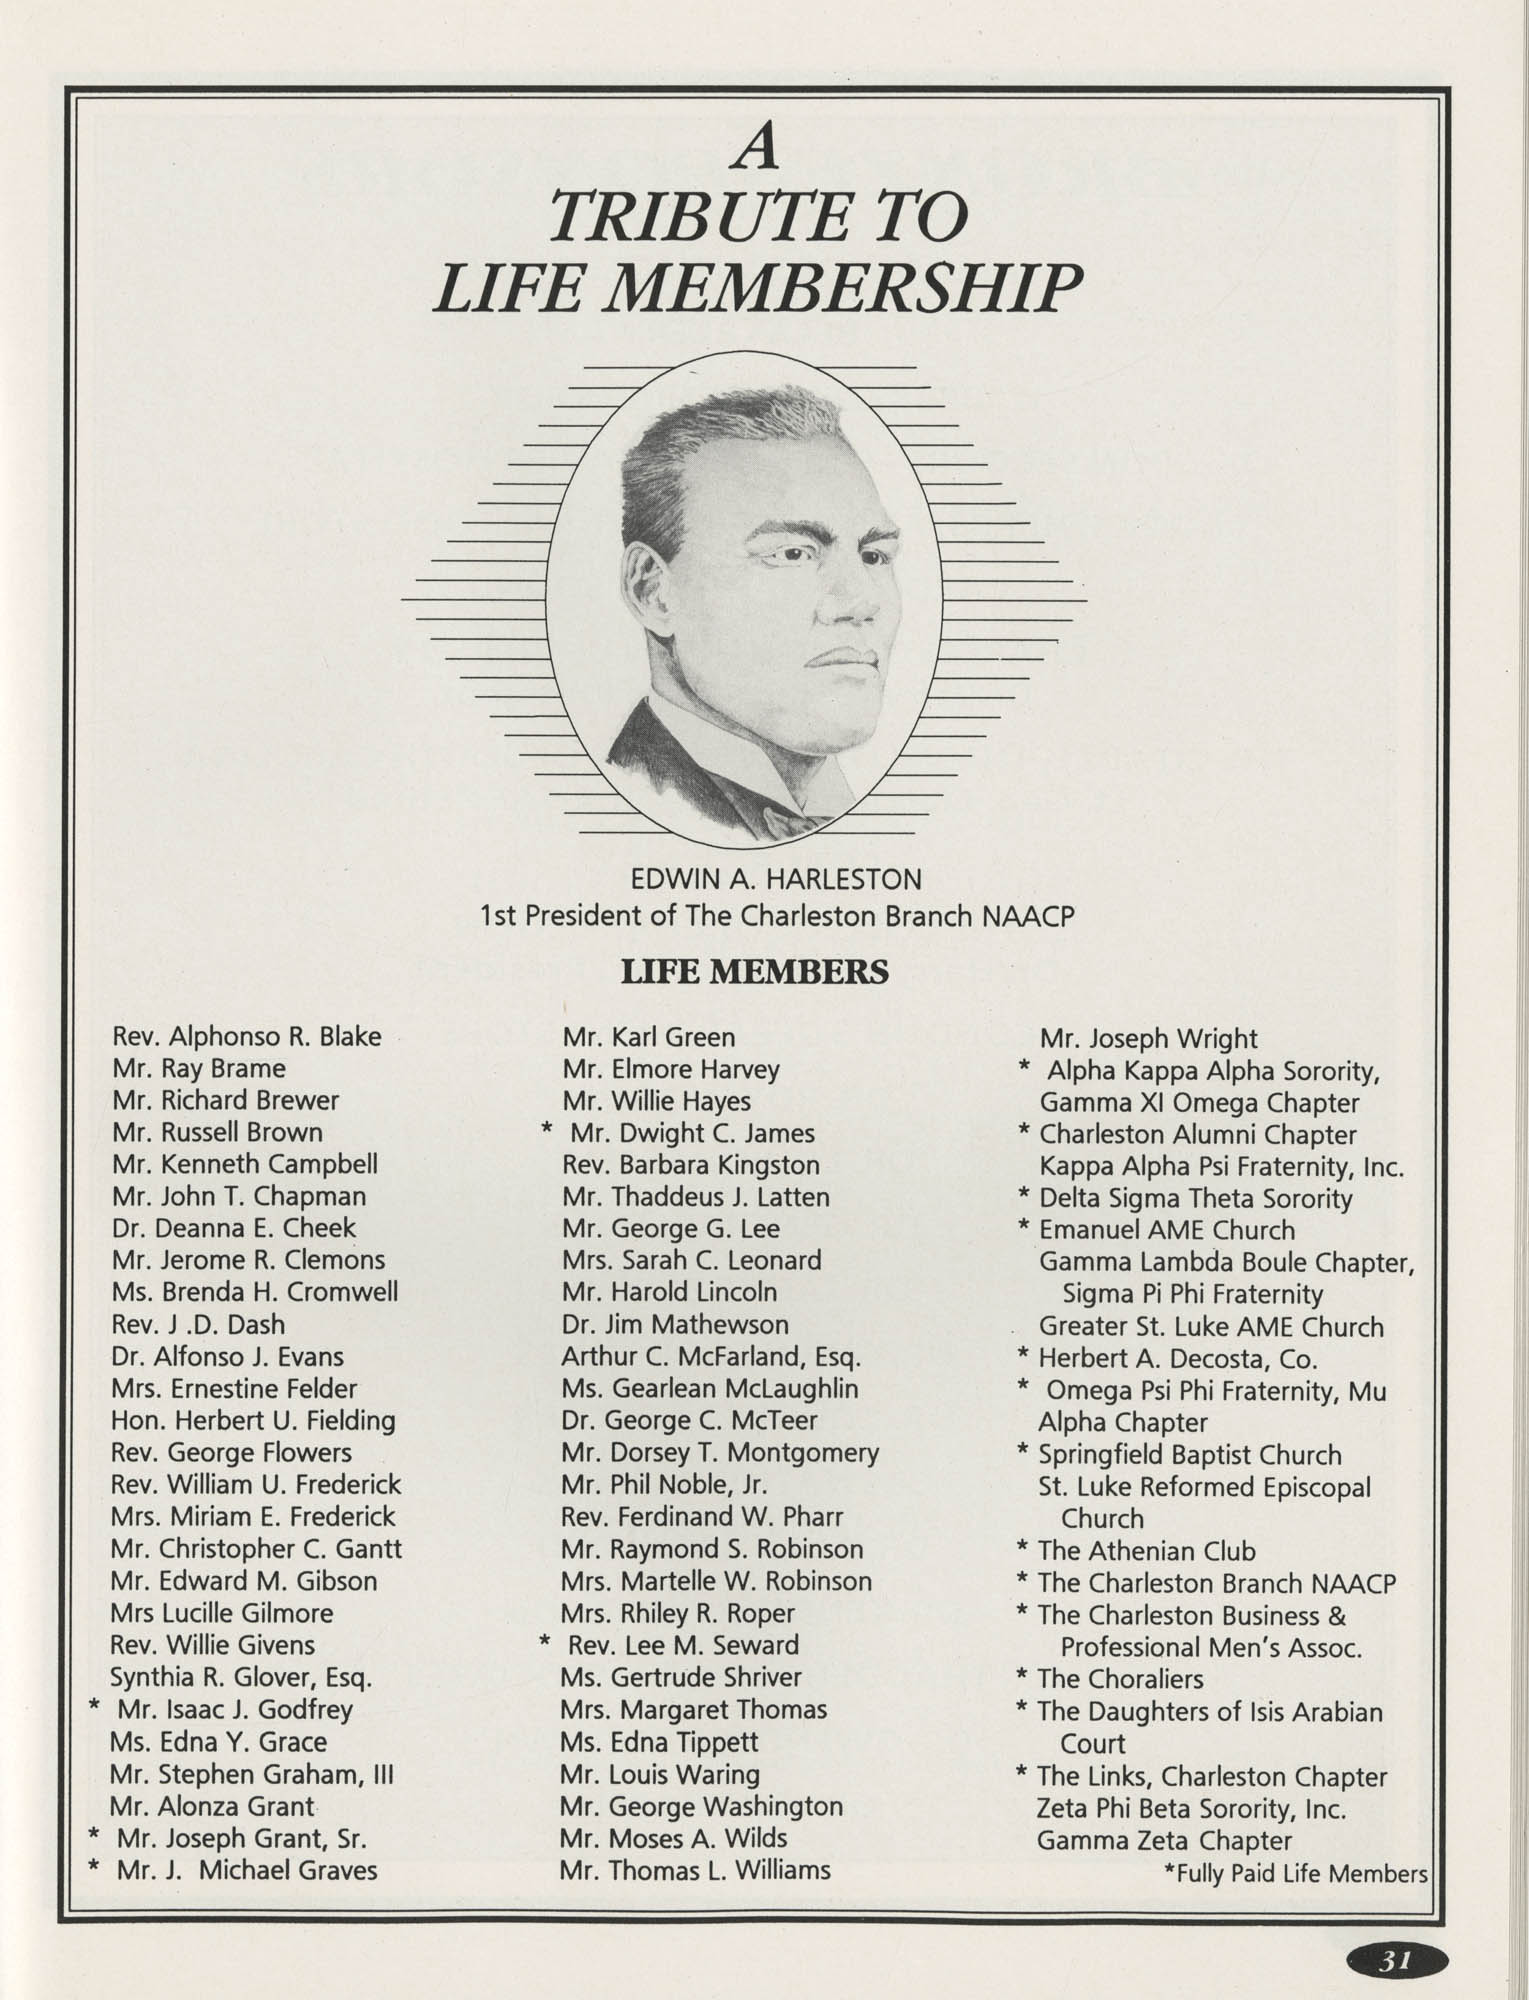 1991 Freedom Fund Magazine, Charleston Branch of the NAACP, Page 31